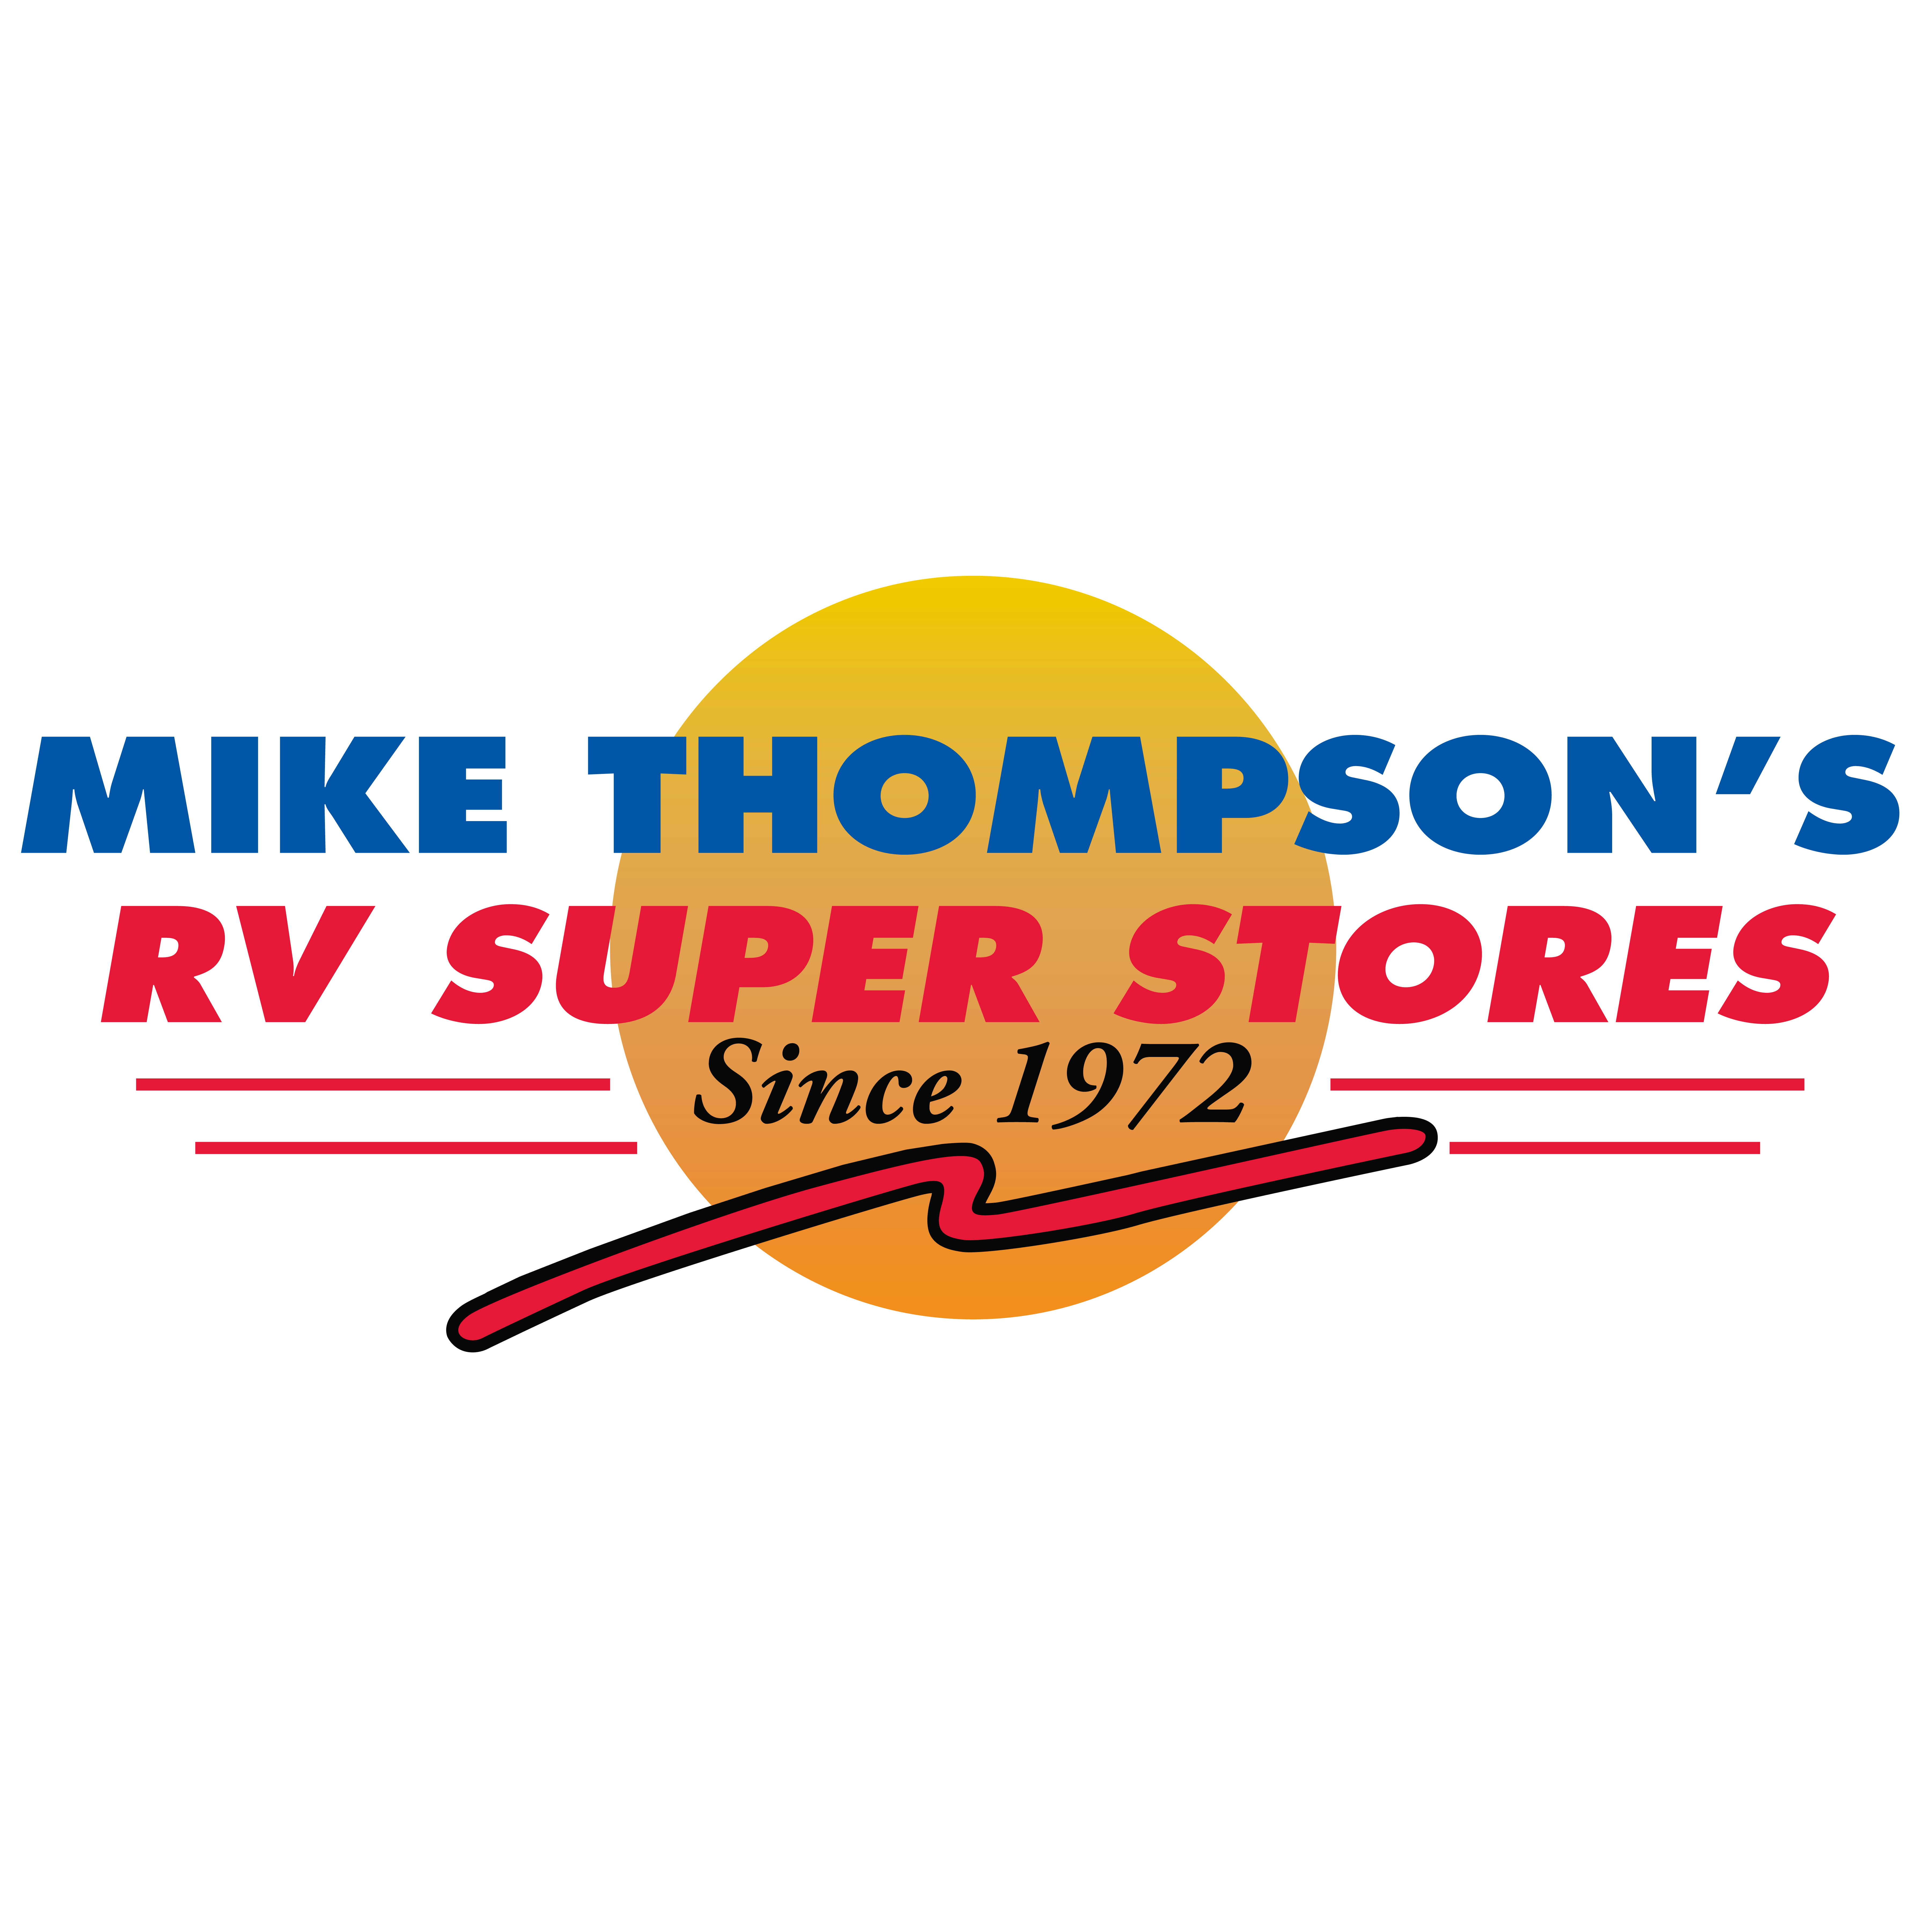 Mike Thompson's RV Superstores